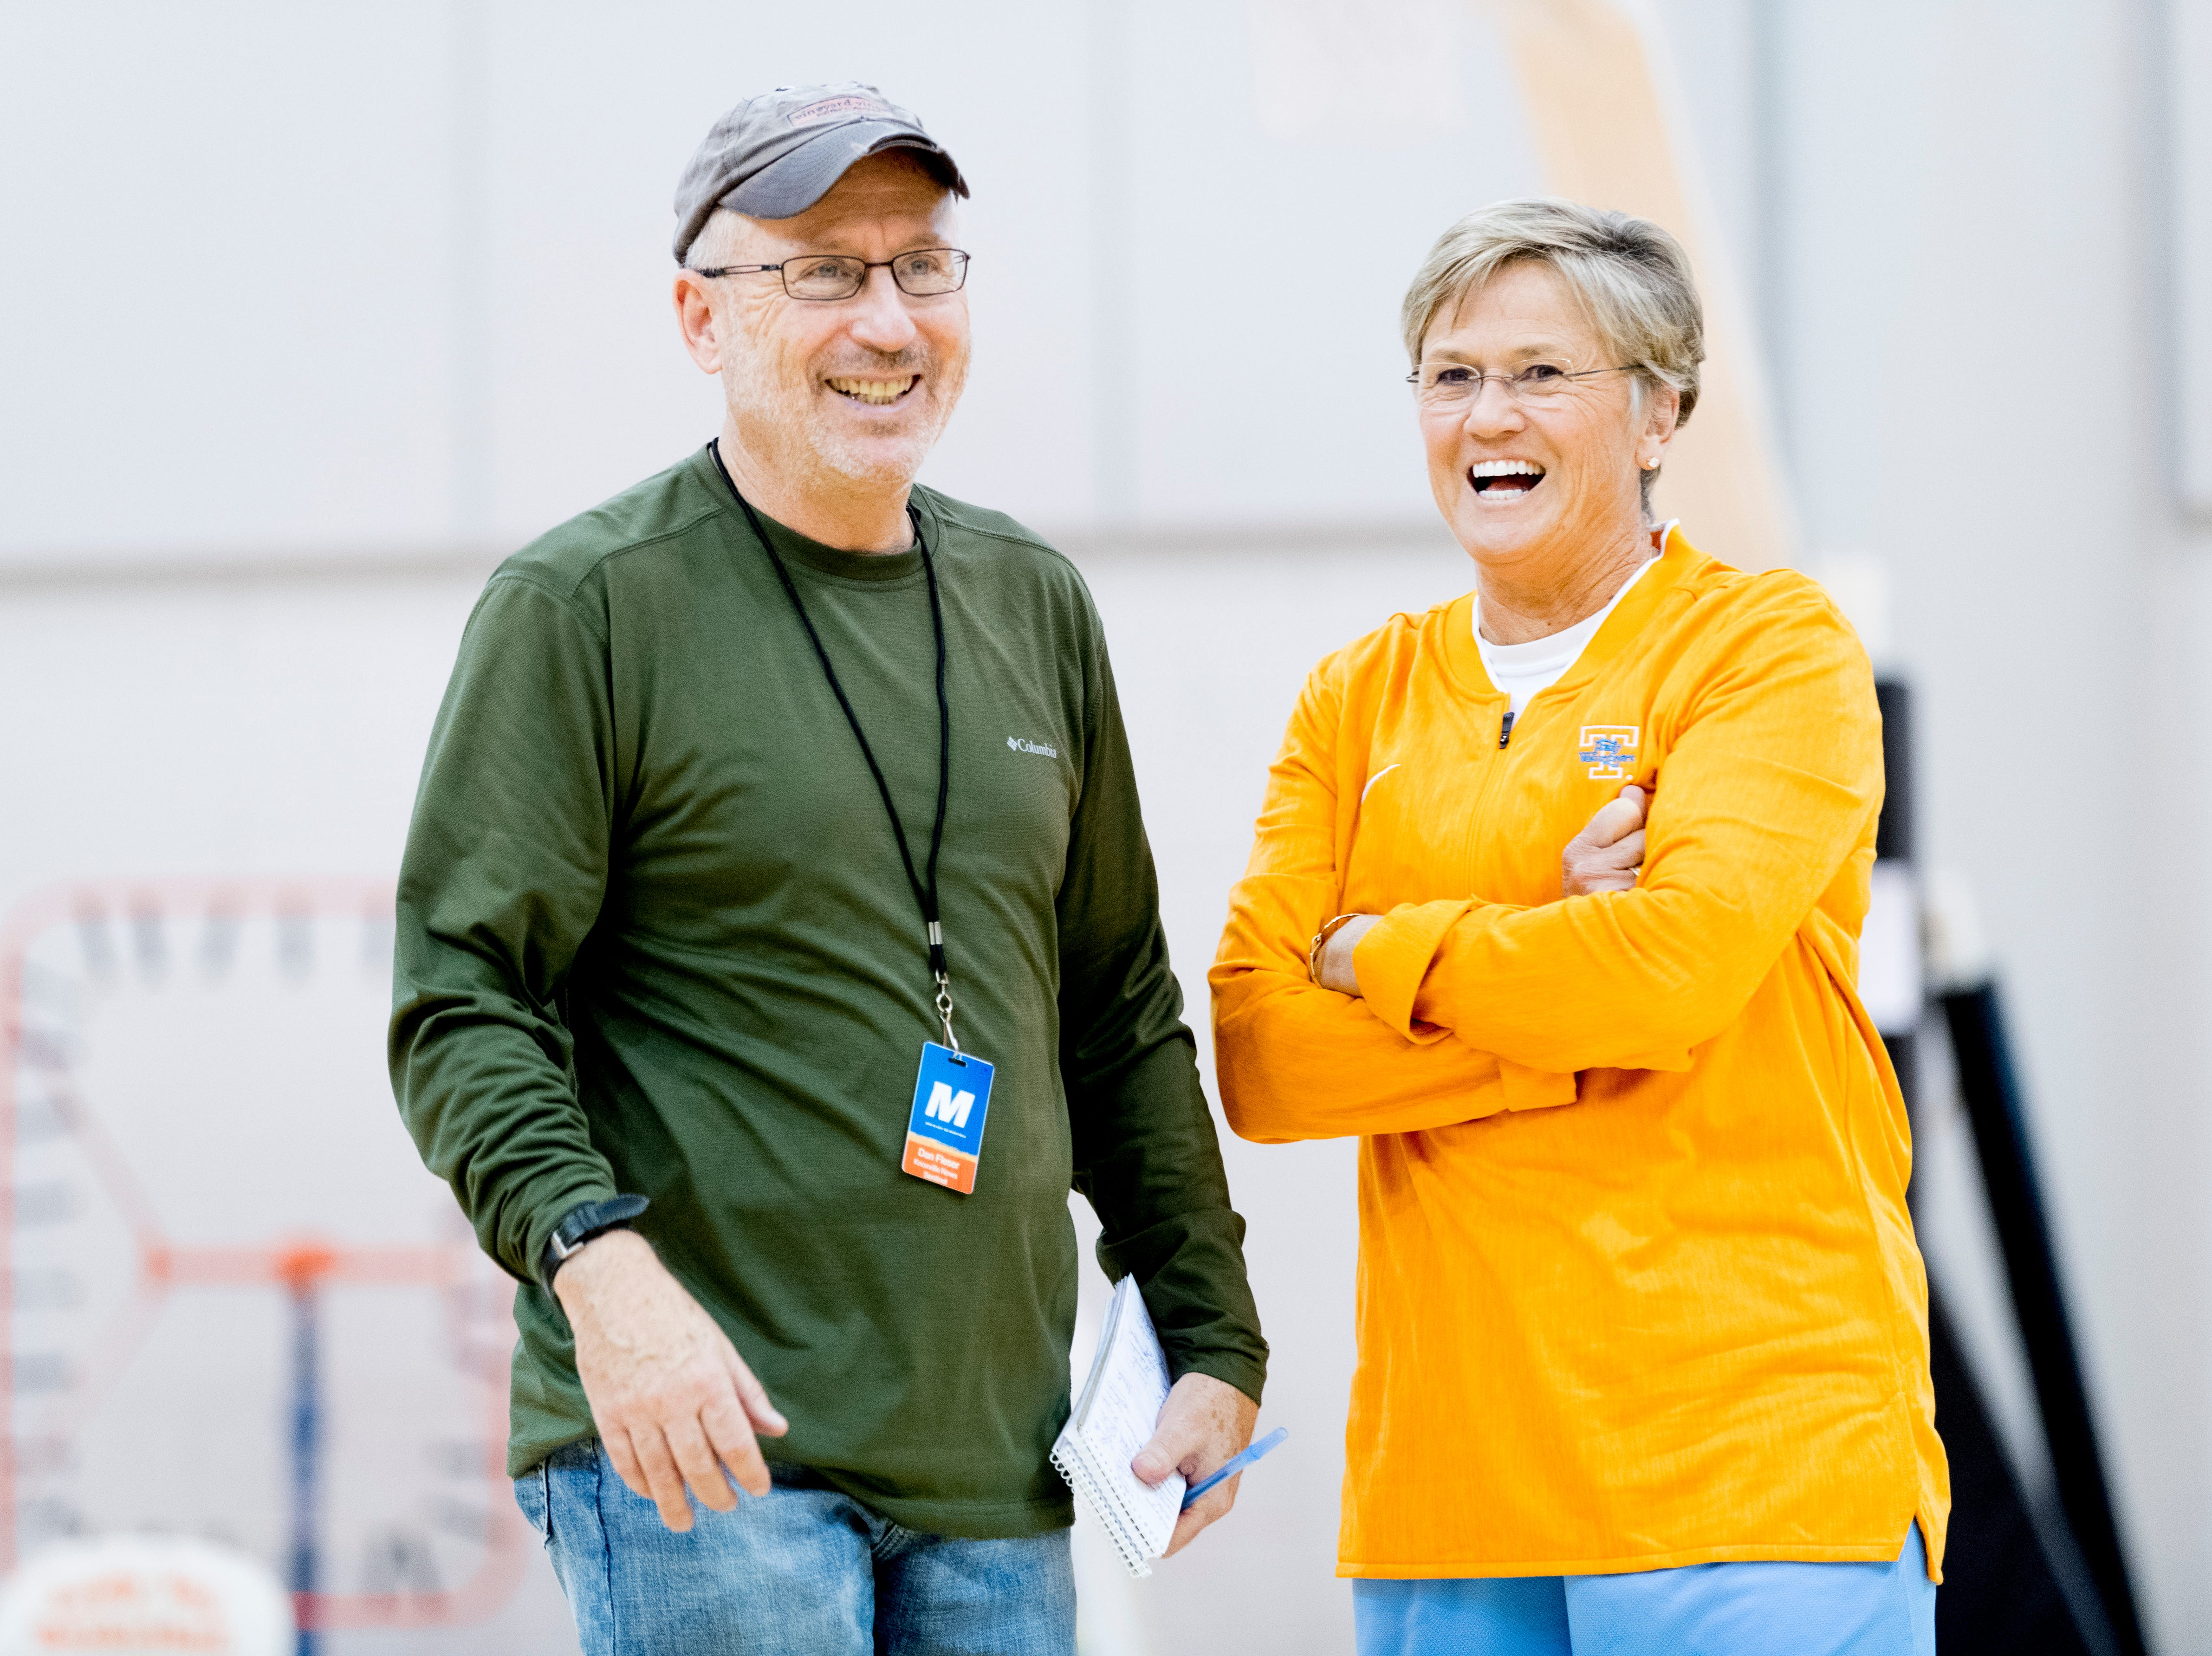 Knoxville News Sentinel reporter Dan Fleser shares a laugh with Tennessee Head Coach Holly Warlick during Tennessee Lady Vols Media Day at Pratt Pavilion in Knoxville, Tennessee on Thursday, October 25, 2018.